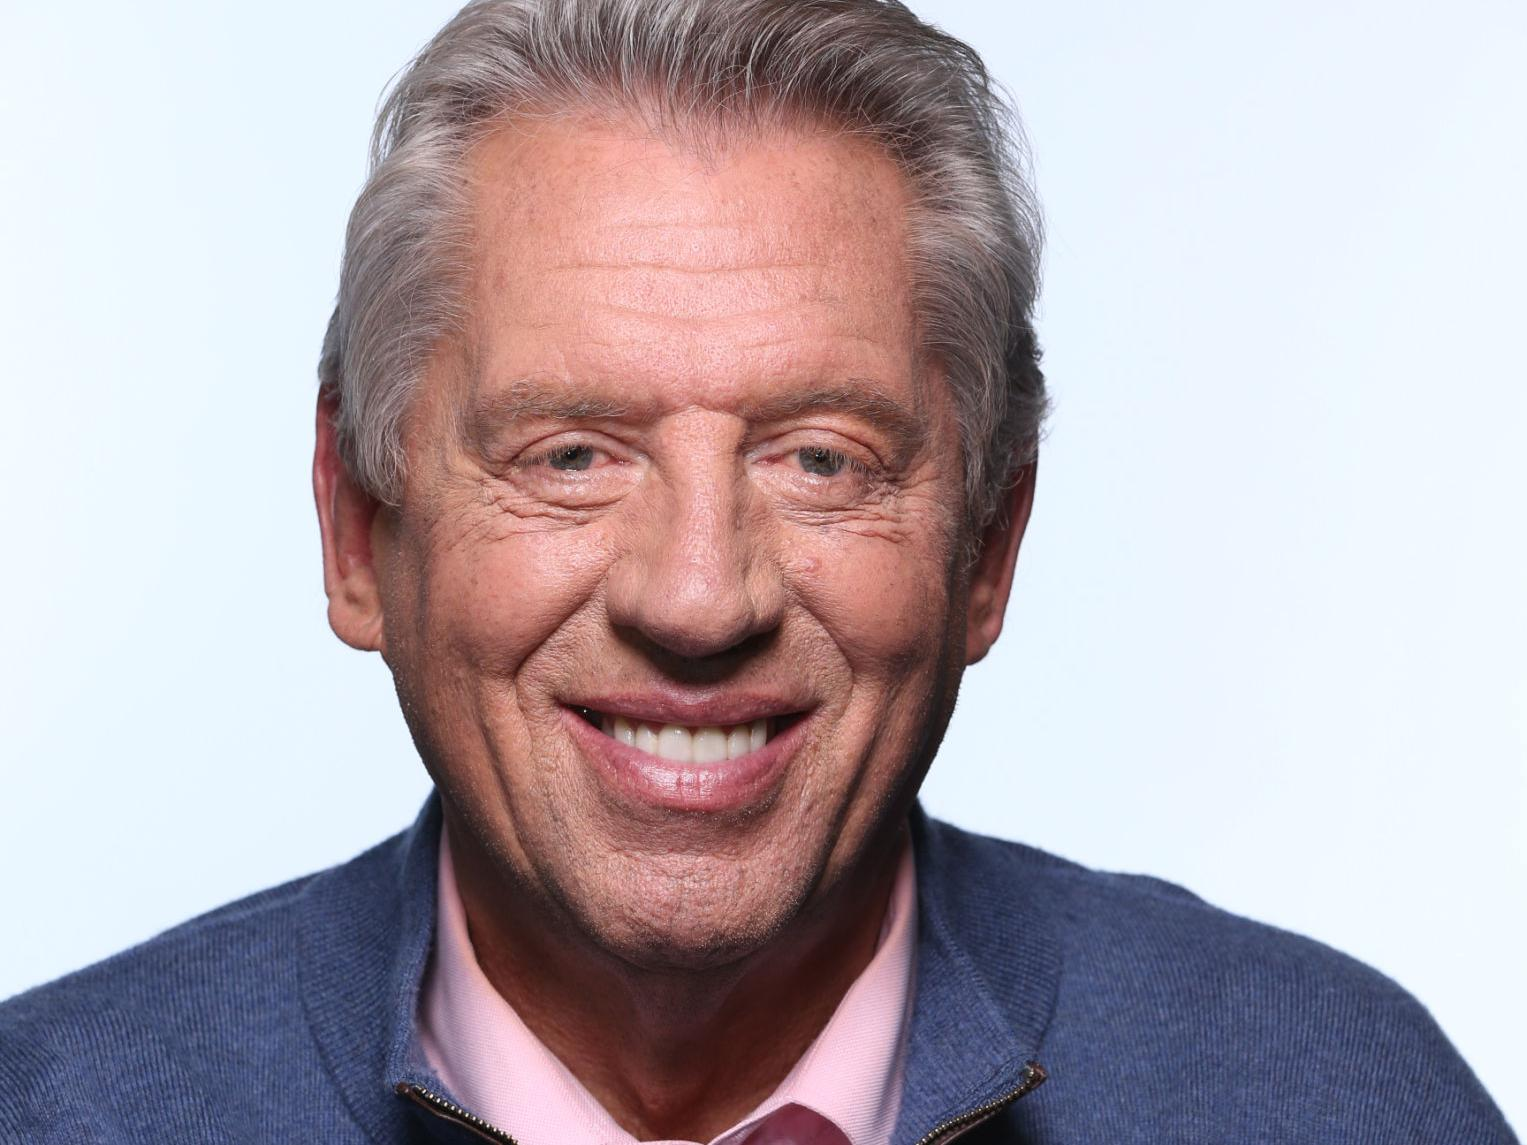 Unlock the power of your potential with John C. Maxwell; leadership guru is Chamber's keynote